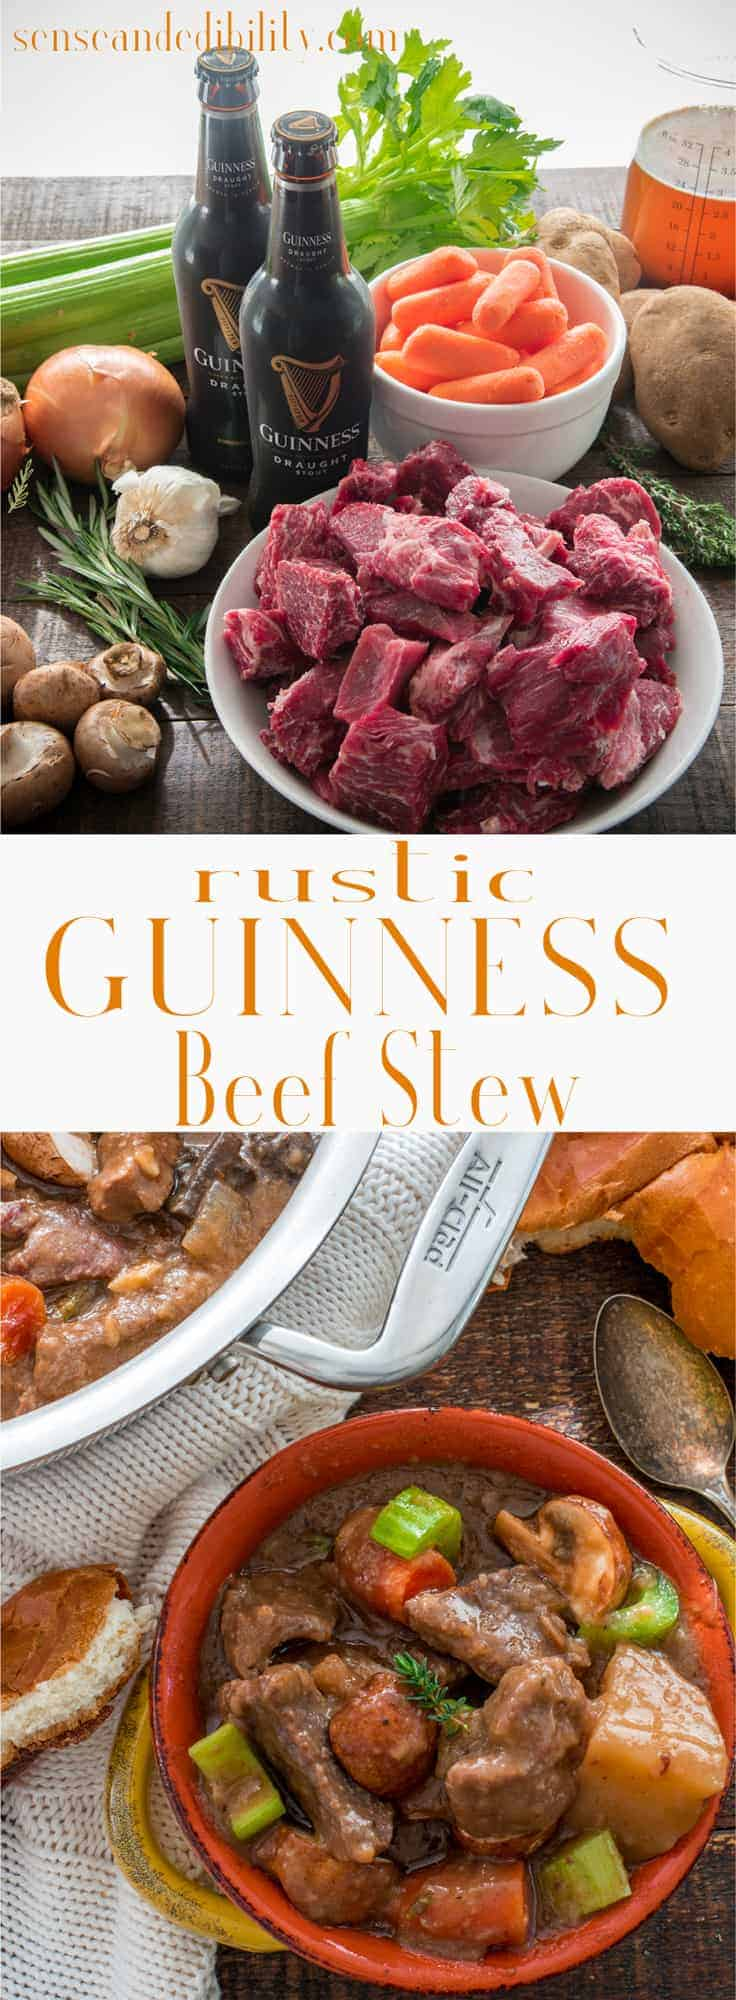 Sense & Edibility's Rustic Guinness Beef Stew Pin